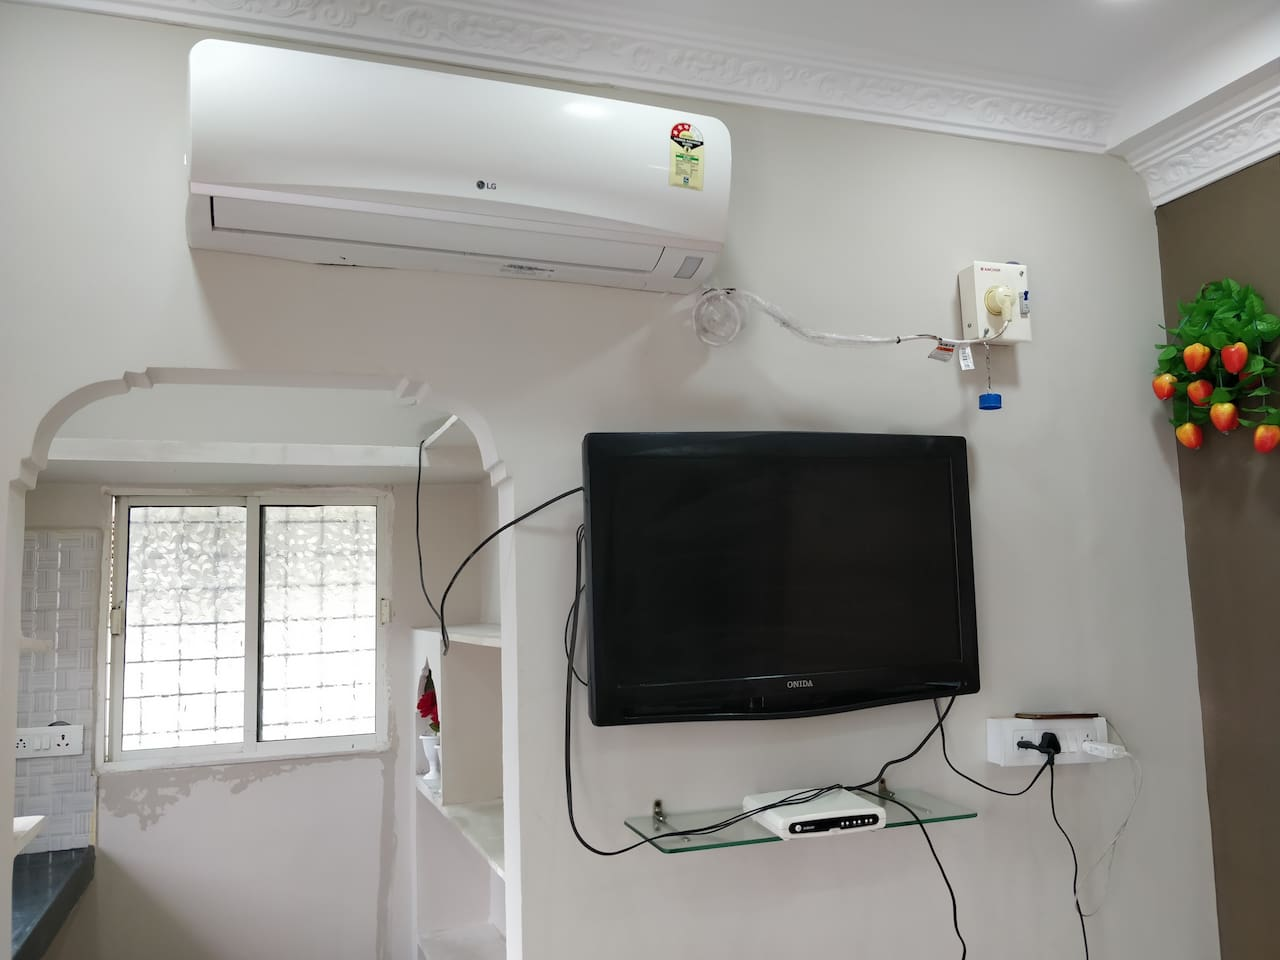 Ac in hall